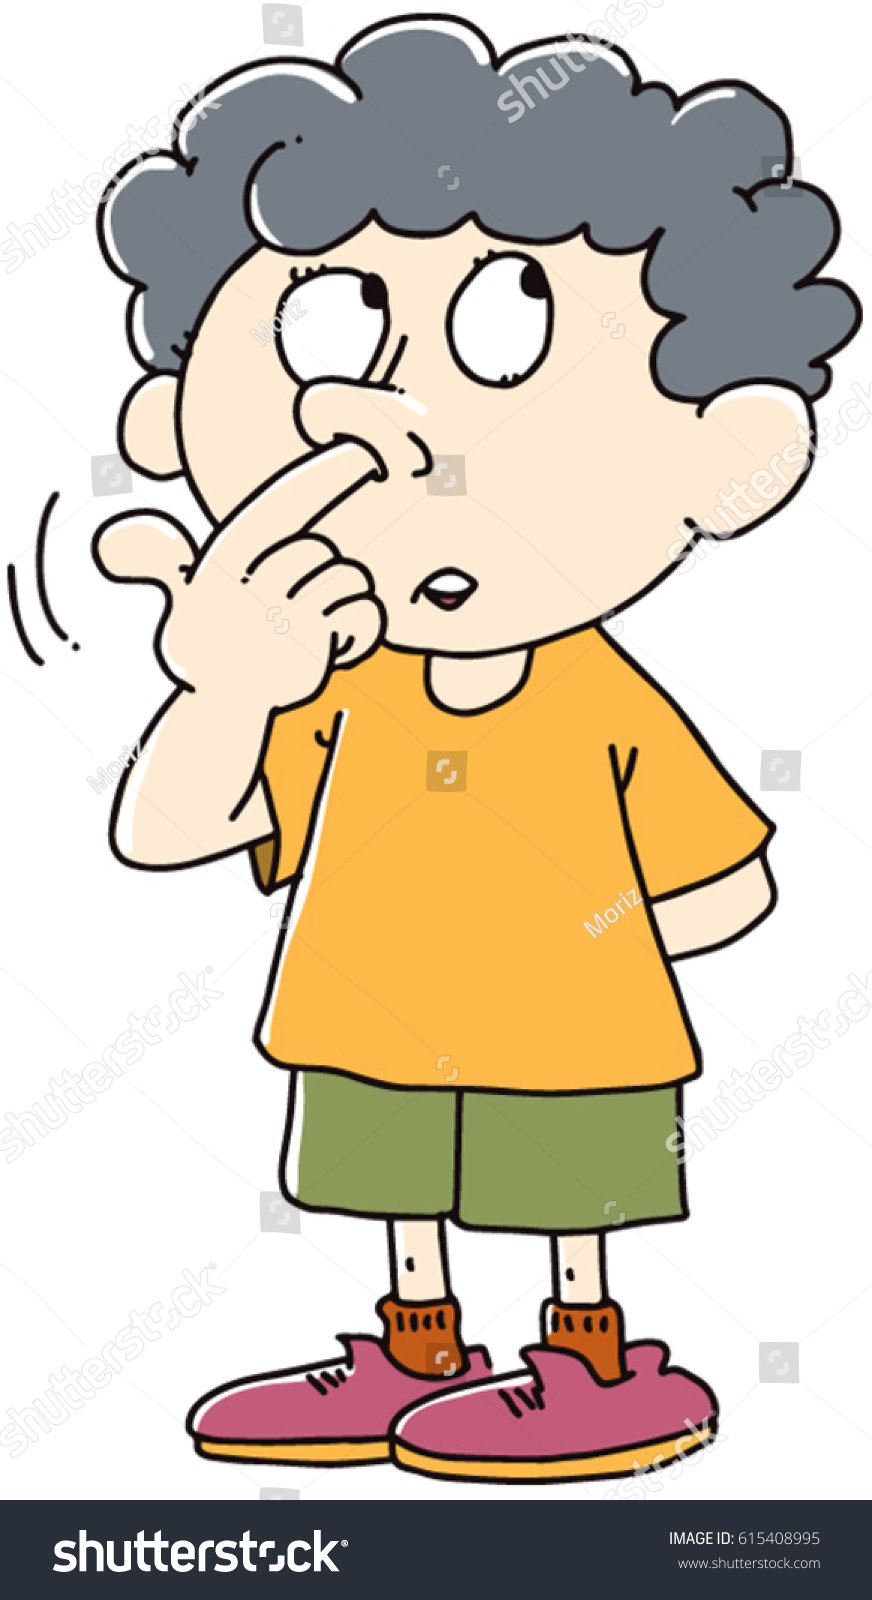 Kid Picks His Nose Stock Vector (Royalty Free) 615408995 - Shutterstock